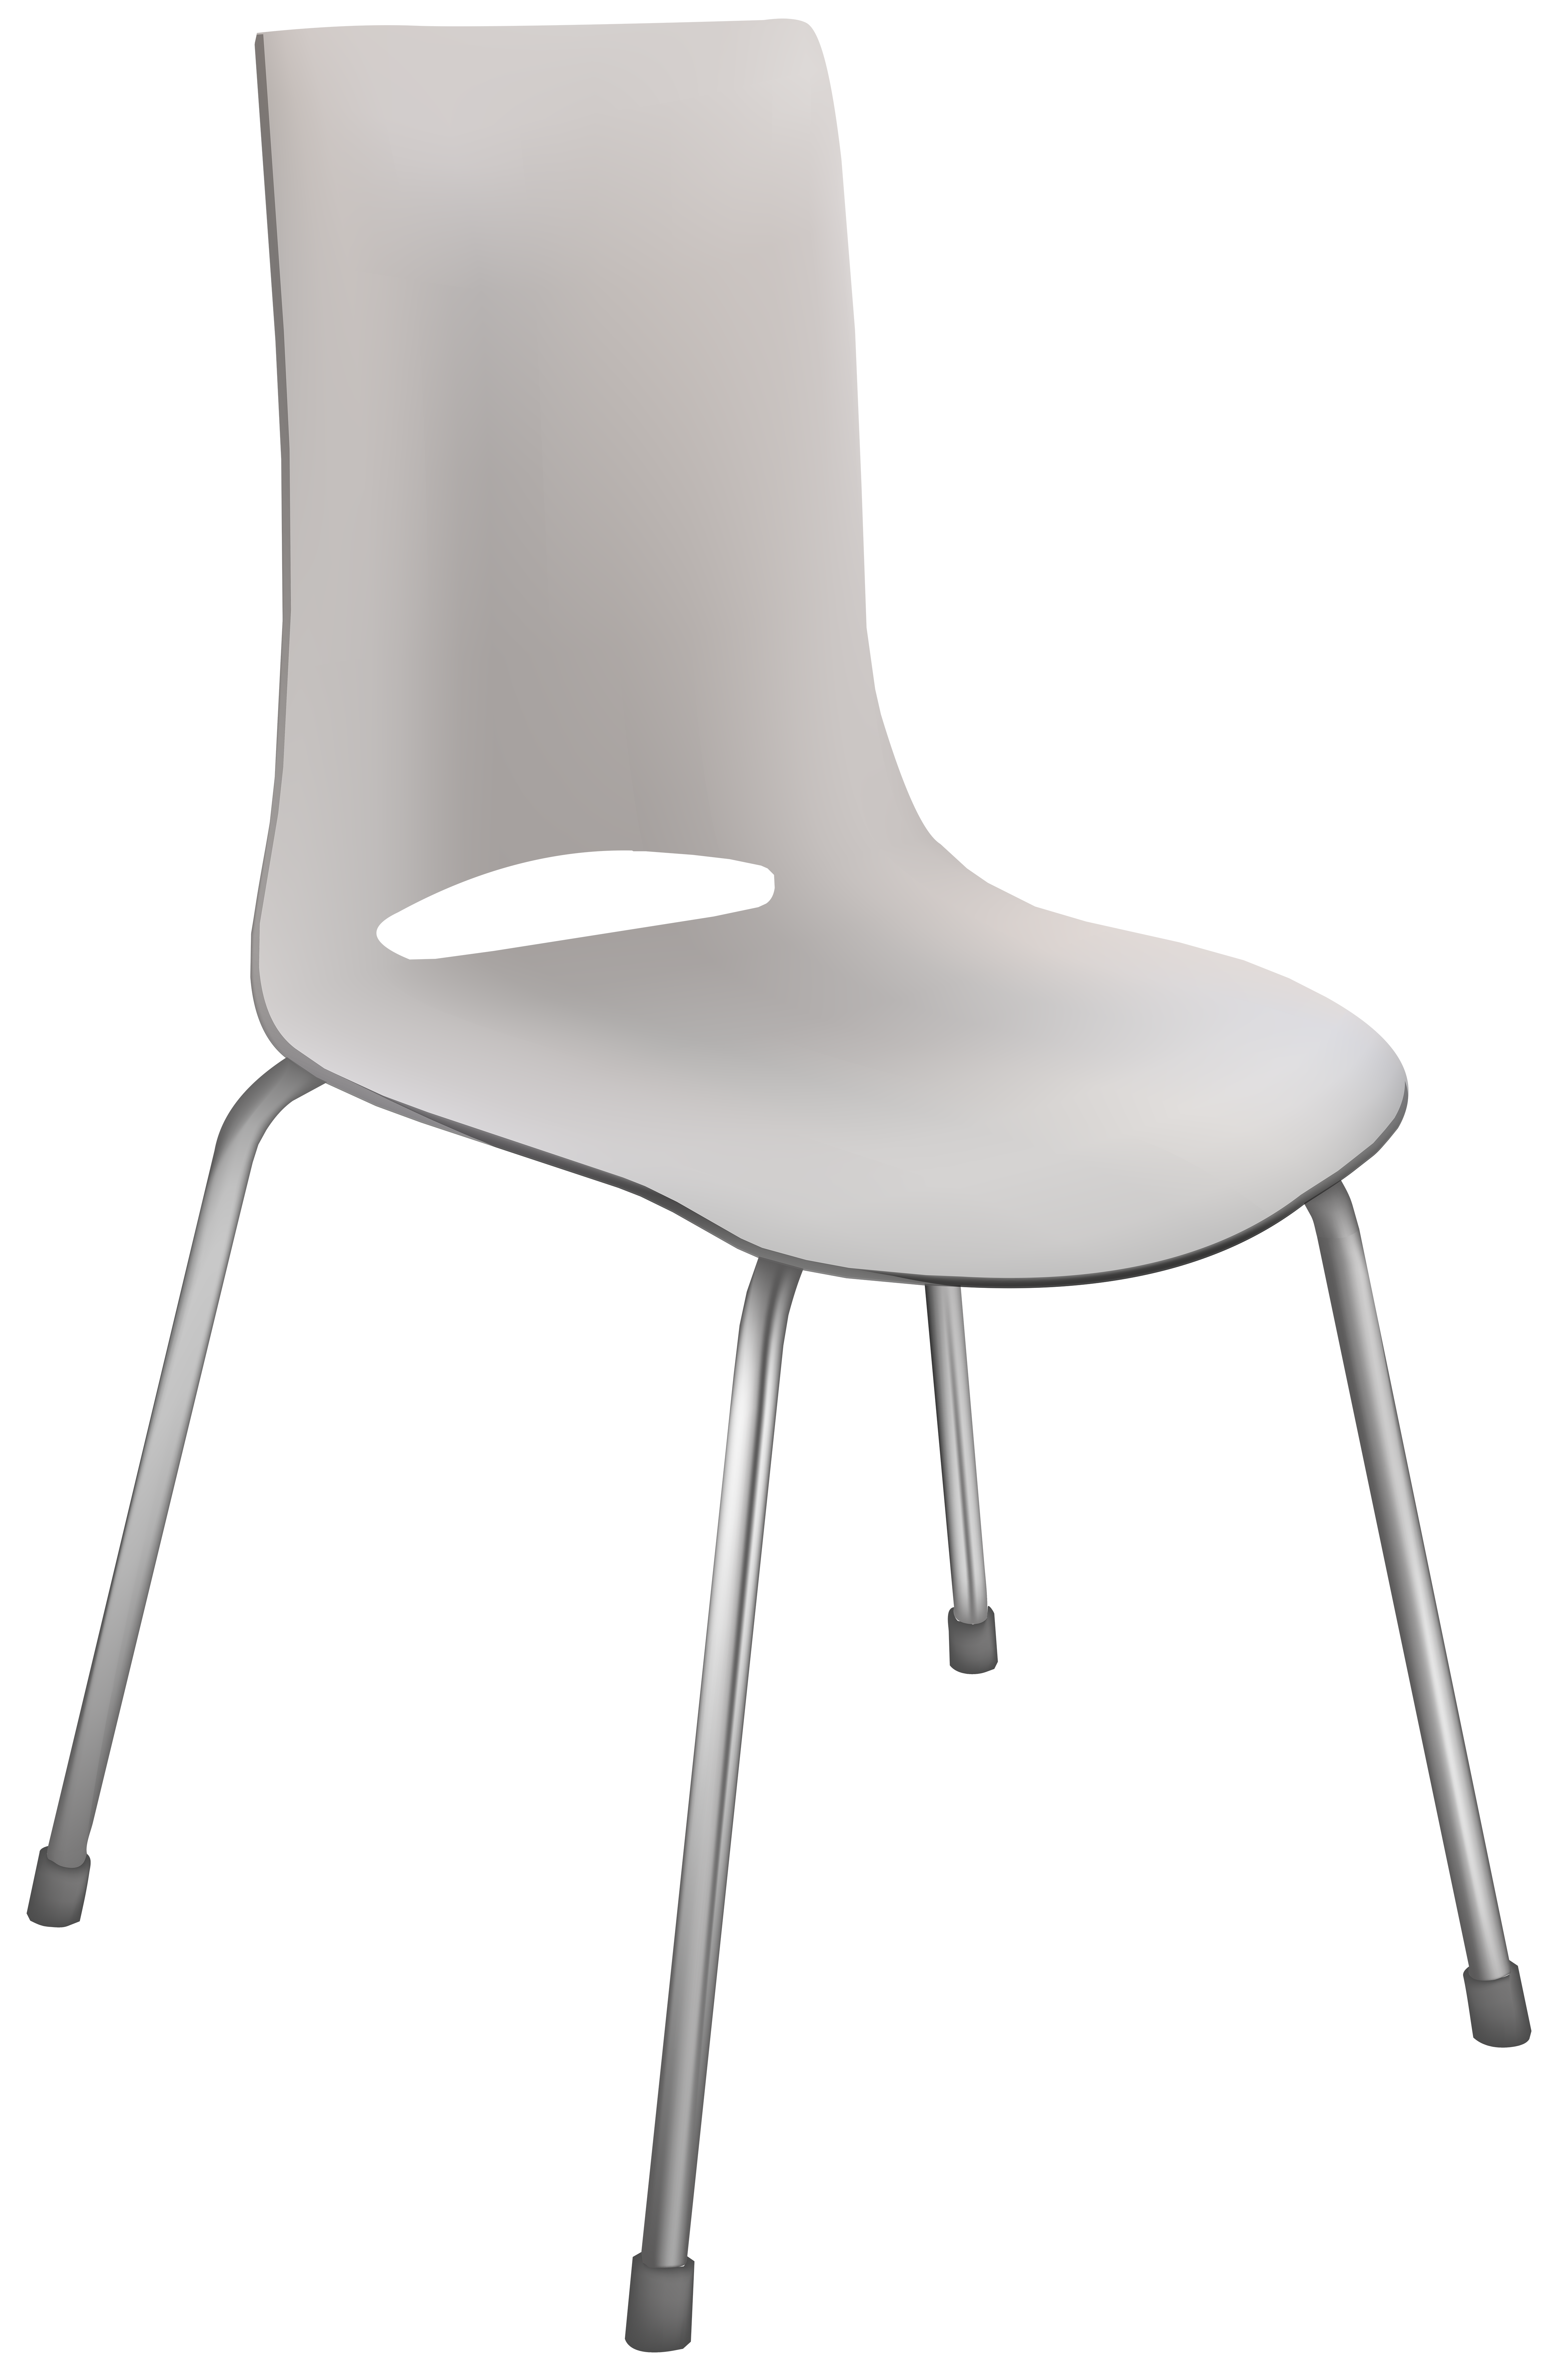 png free download Png clip art image. Chair clipart transparent background.